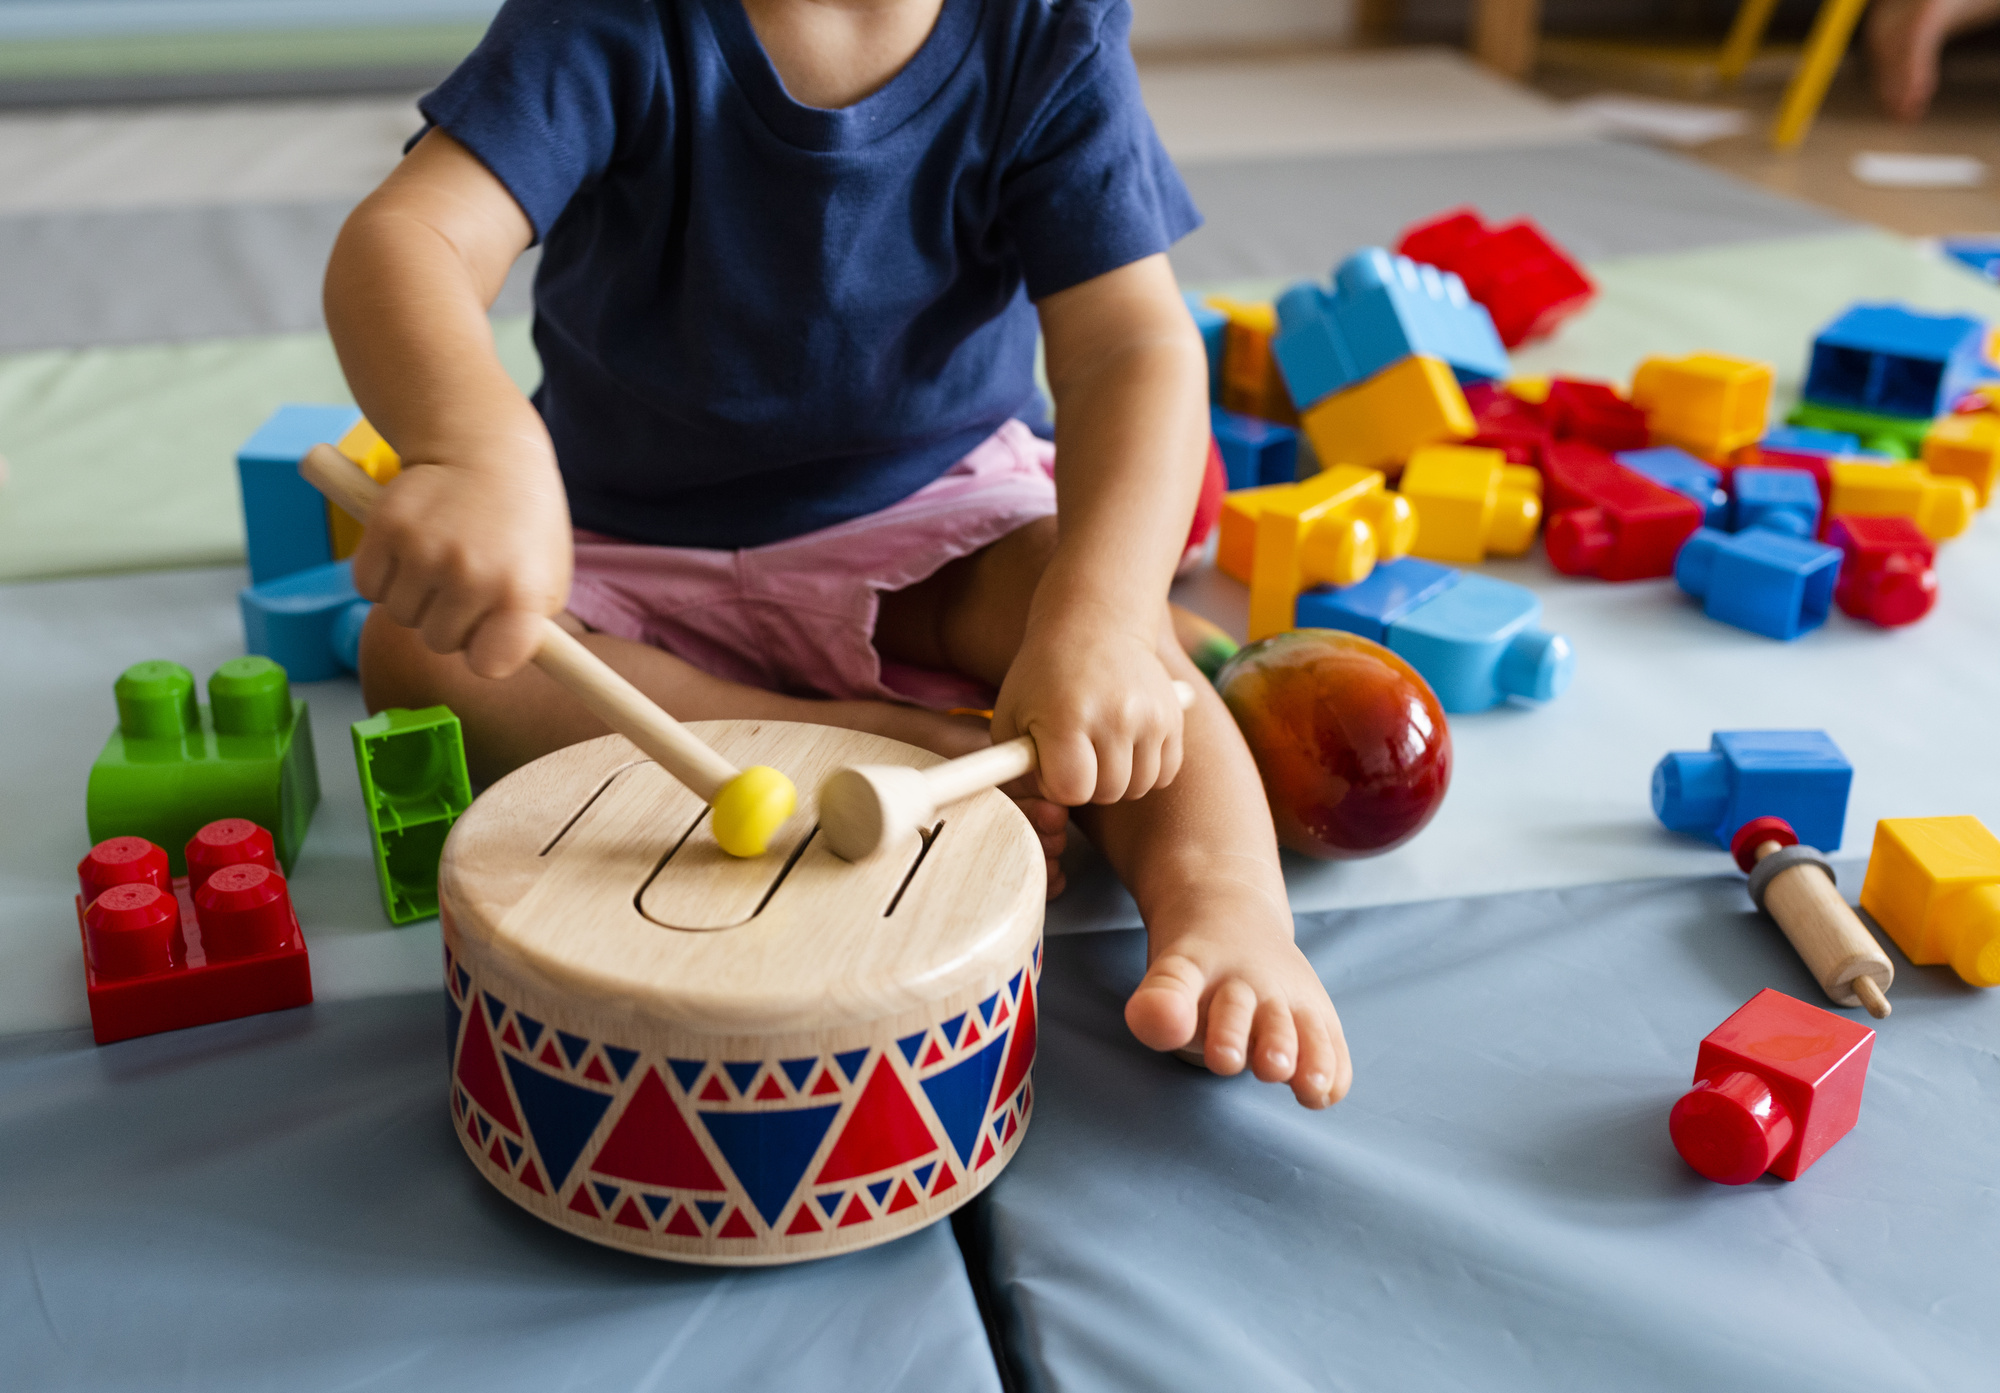 Top 5 Factors to Consider When Buying Toys for Kids